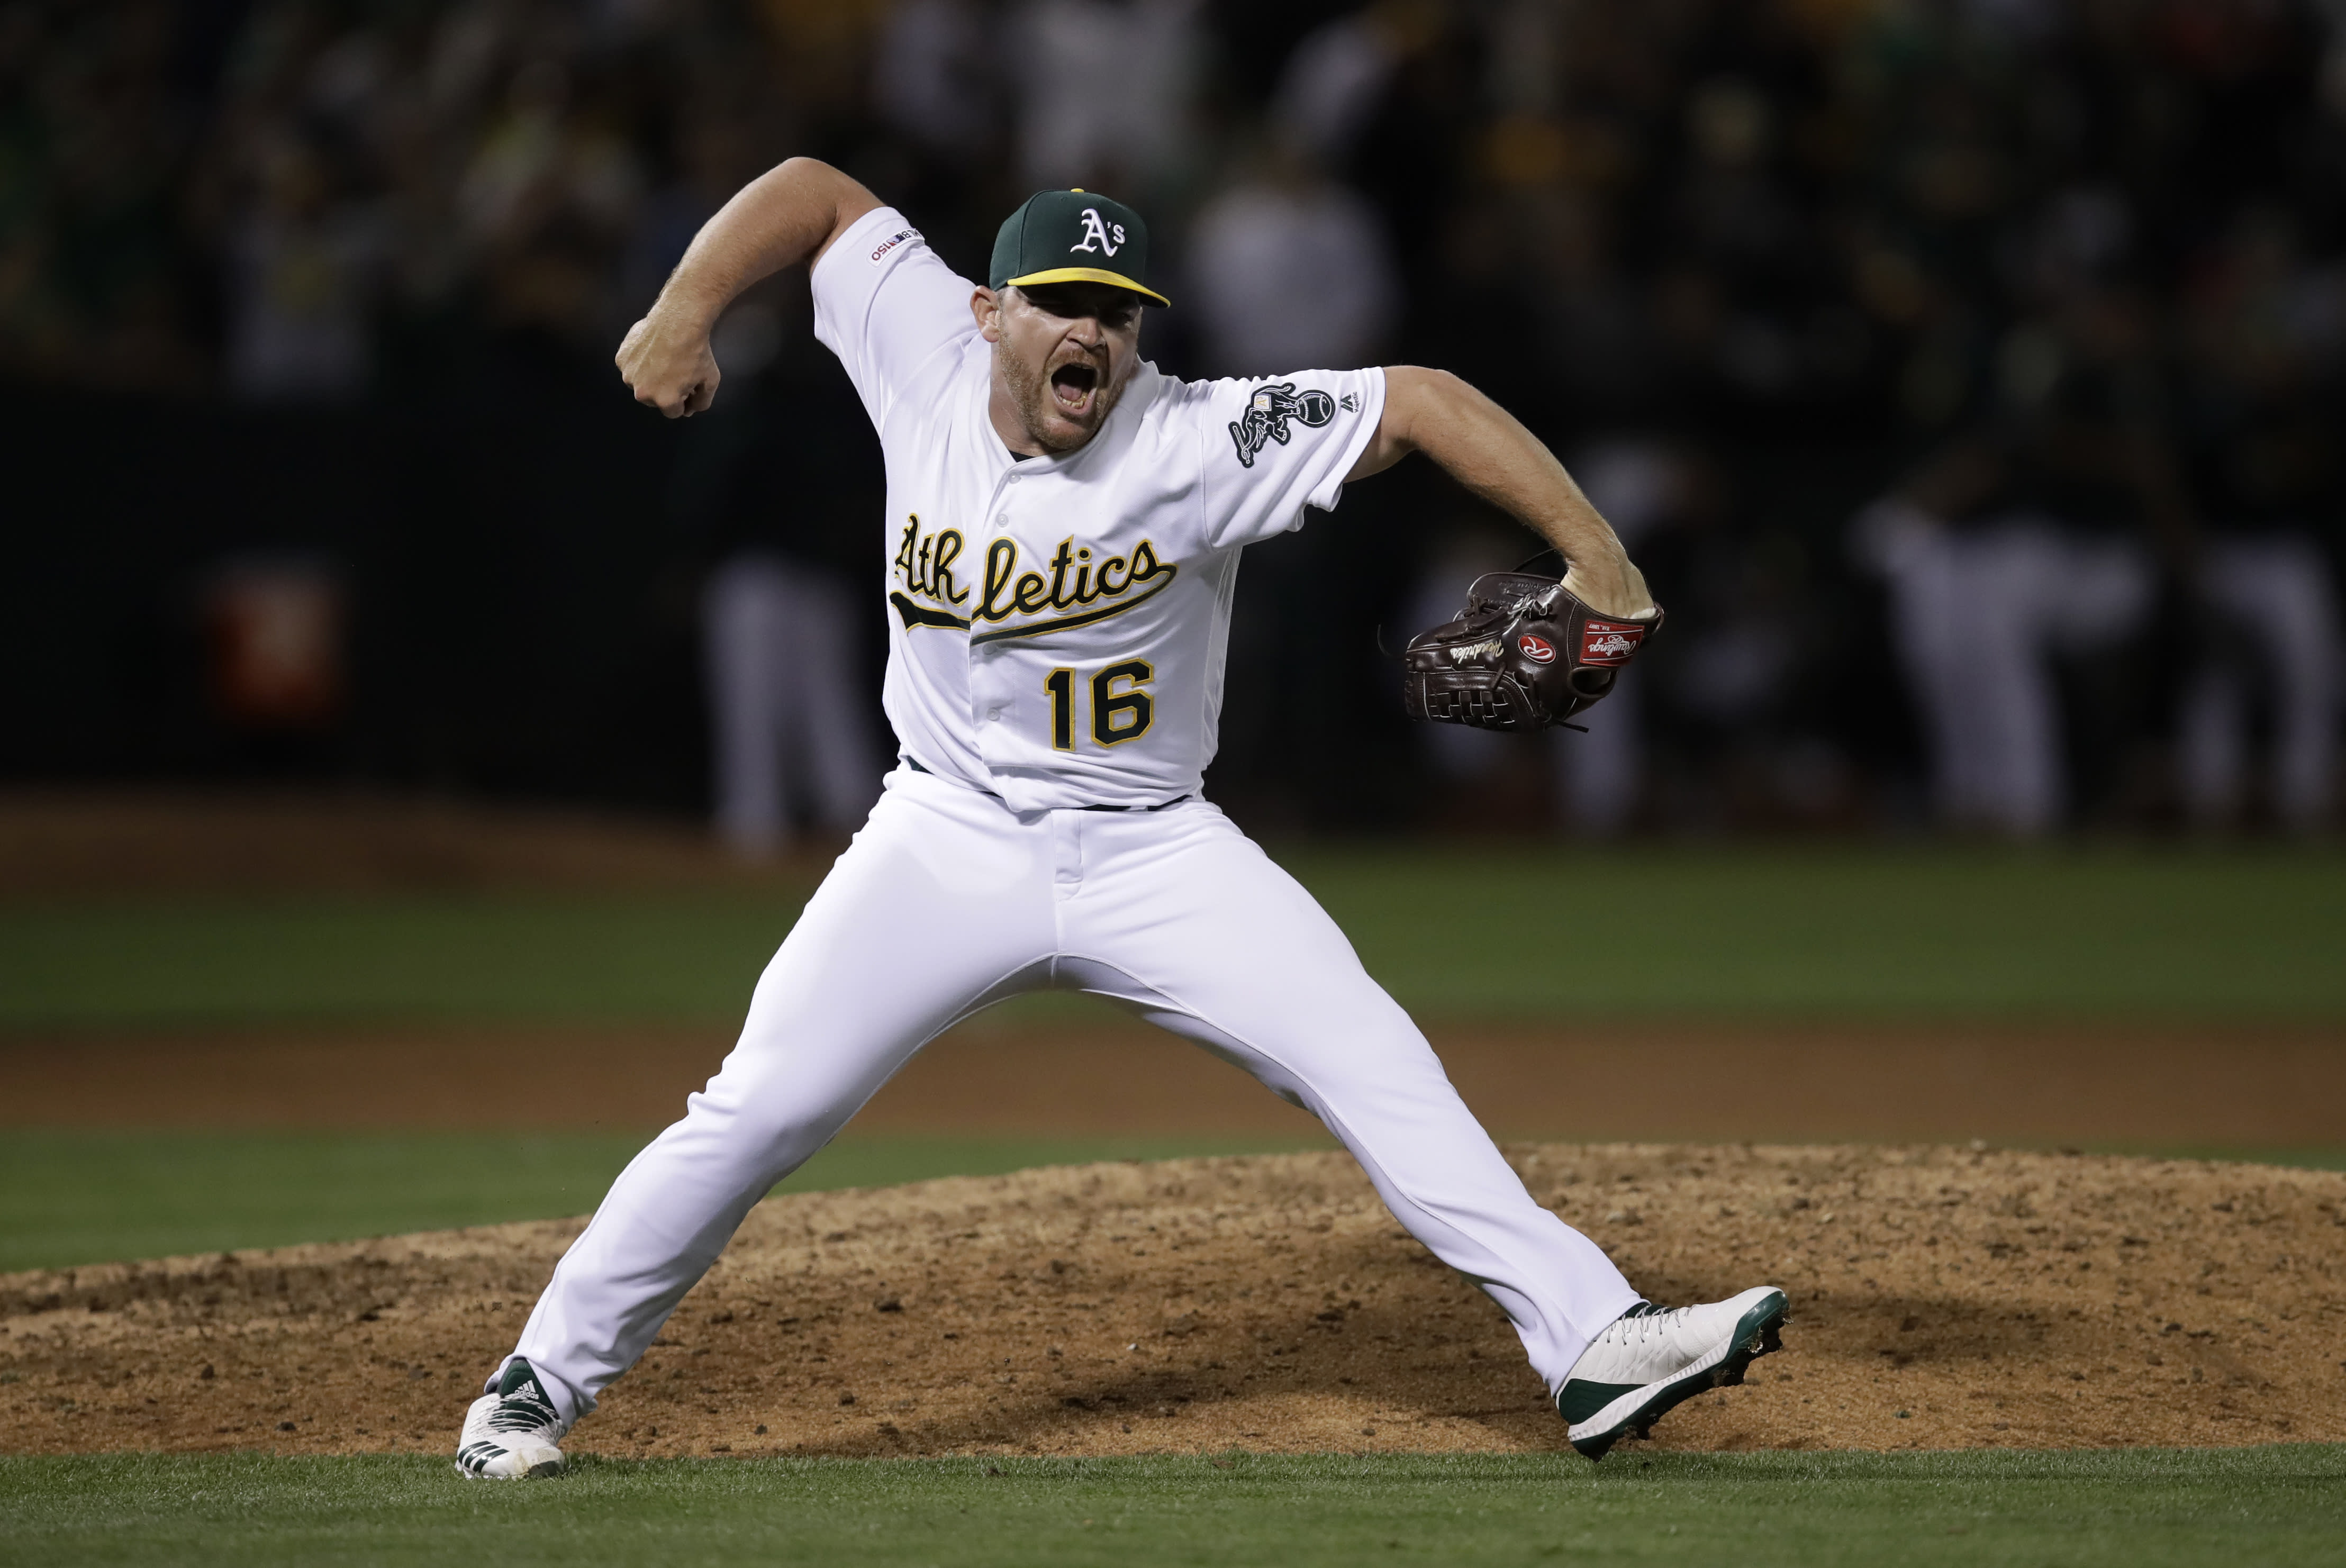 FILE - In this Aug. 21, 2019, file photo, Oakland Athletics pitcher Liam Hendriks celebrates as the final out is made in the team's baseball game against the New York Yankees, in Oakland, Calif. Manager Bob Melvin and the Oakland Athletics have put their faith in Hendriks to finish games as a reliable ninth-inning option night after night. Never one to stick with traditional methods and frustrated with himself last year in Triple-A, Hendriks searched for a way to transform his mental approach. This good-natured Aussie was in need of an attitude shift. And an energy healer named Rubi Rios sure provided a nice assist in his transformation process. (AP Photo/Ben Margot, File)